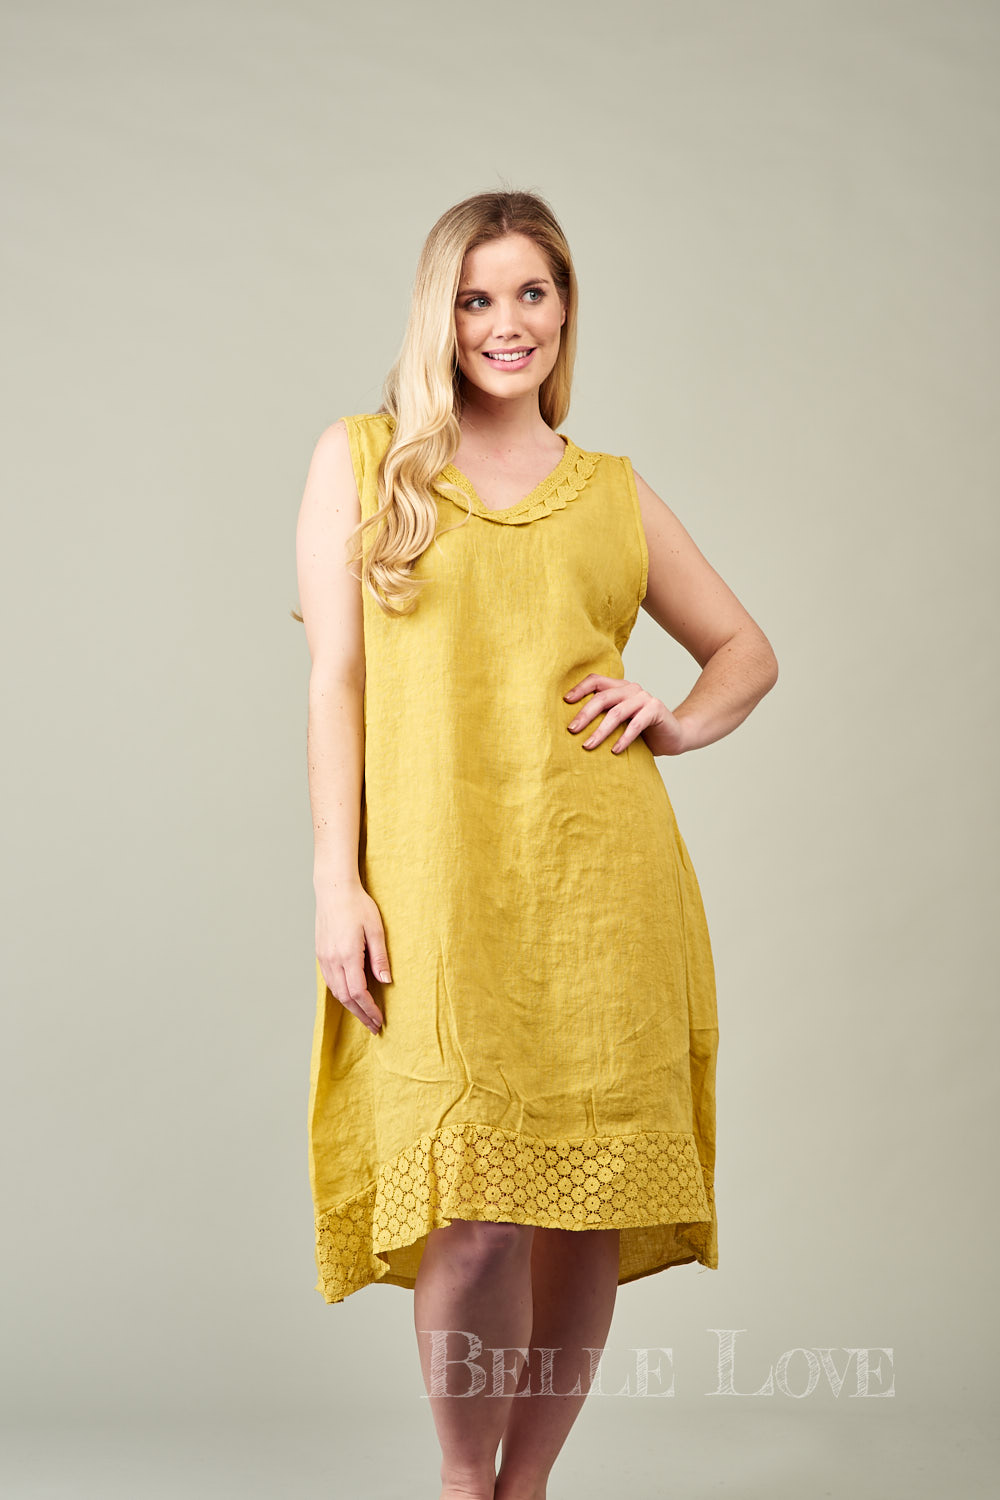 Belle Love Italy Rosalie Linen Dress